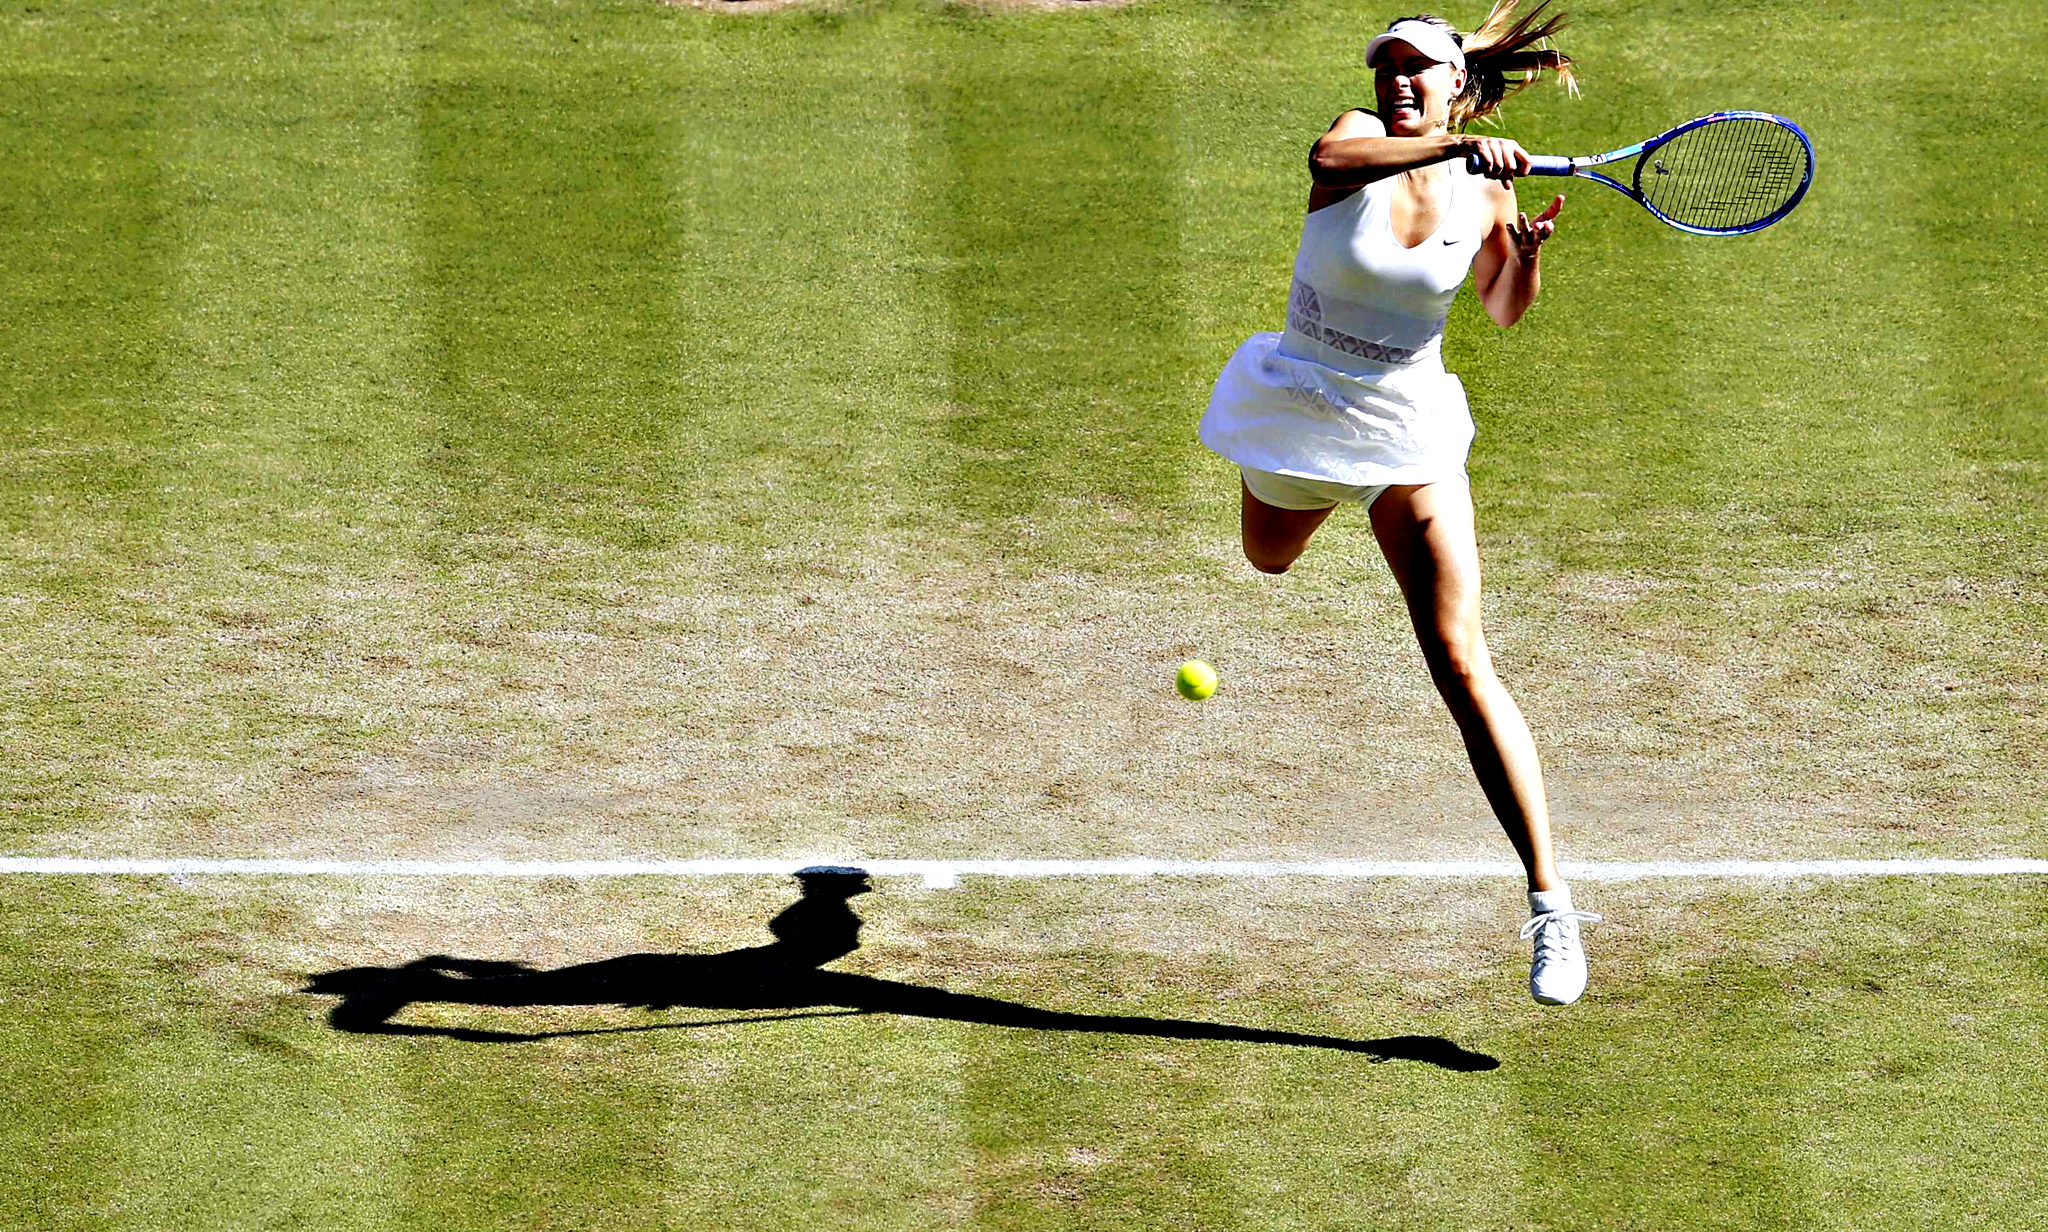 Maria Sharapova of Russia hits a shot during her match against Serena Williams of the U.S.A. at the Wimbledon Tennis Championships in London...Maria Sharapova of Russia hits a shot during her match against Serena Williams of the U.S.A. at the Wimbledon Tennis Championships in London, July 9, 2015.